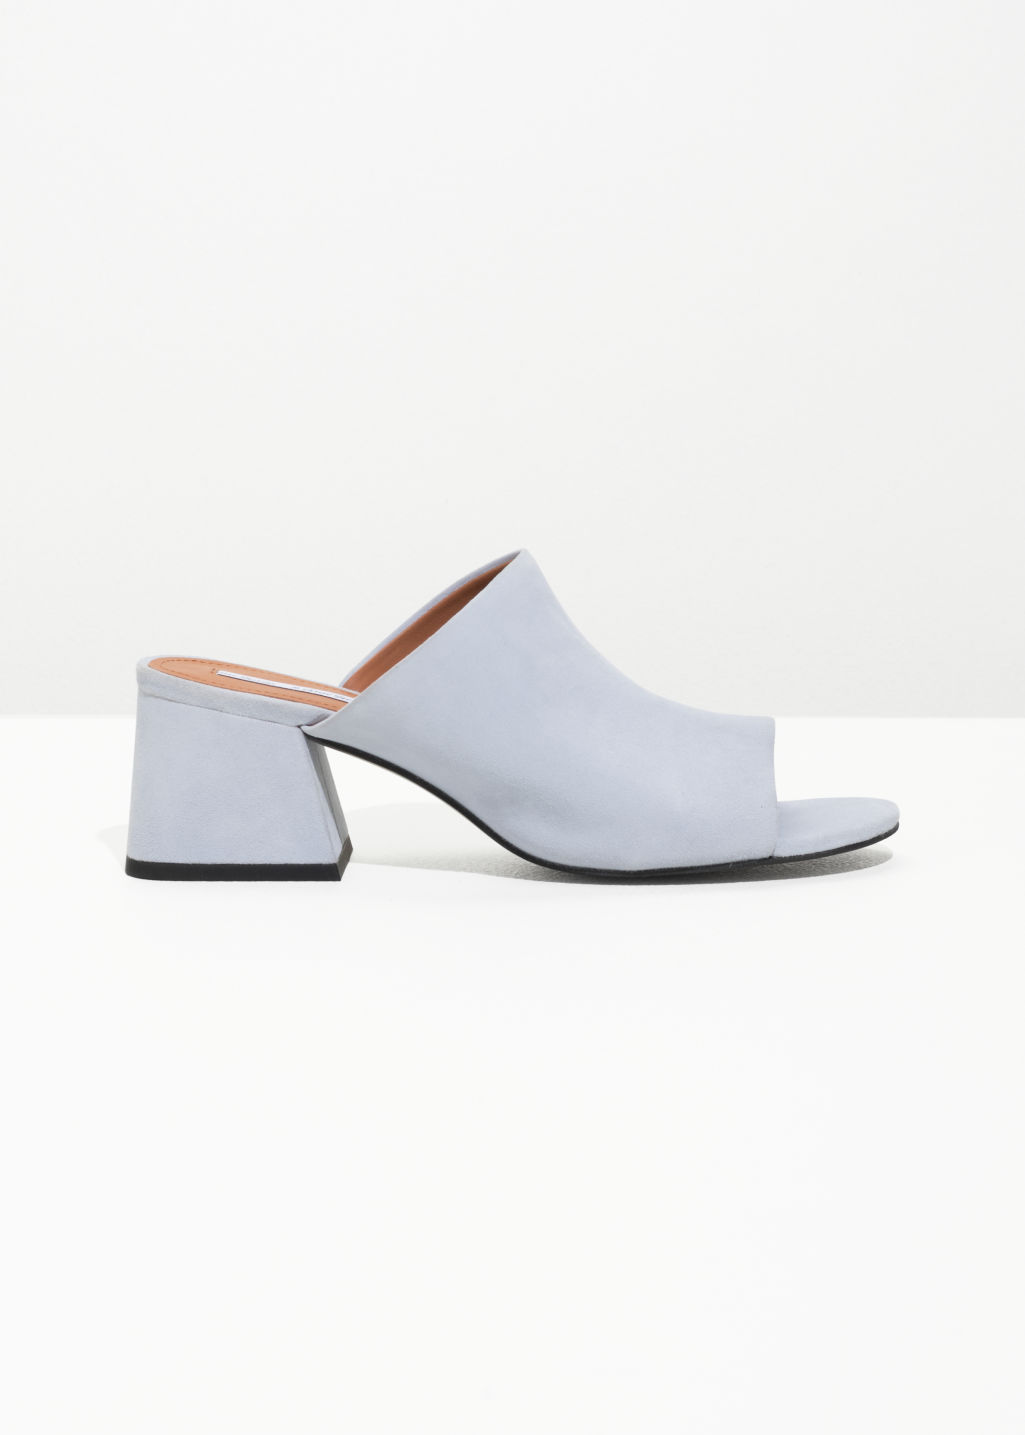 & OTHER STORIES Open Toe Suede Mules